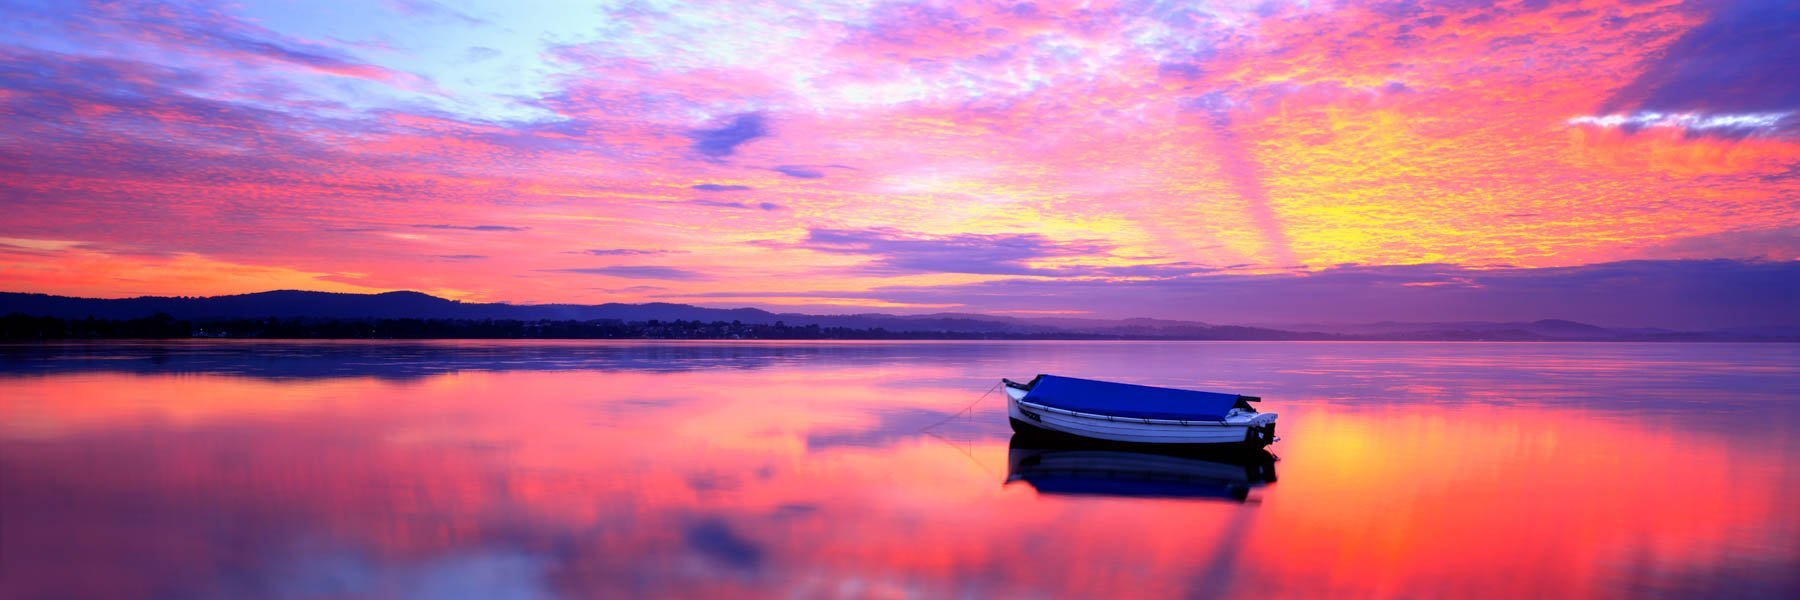 A glowing sunset over a small skiff on Tuggerah lakes, NSW, Australia.